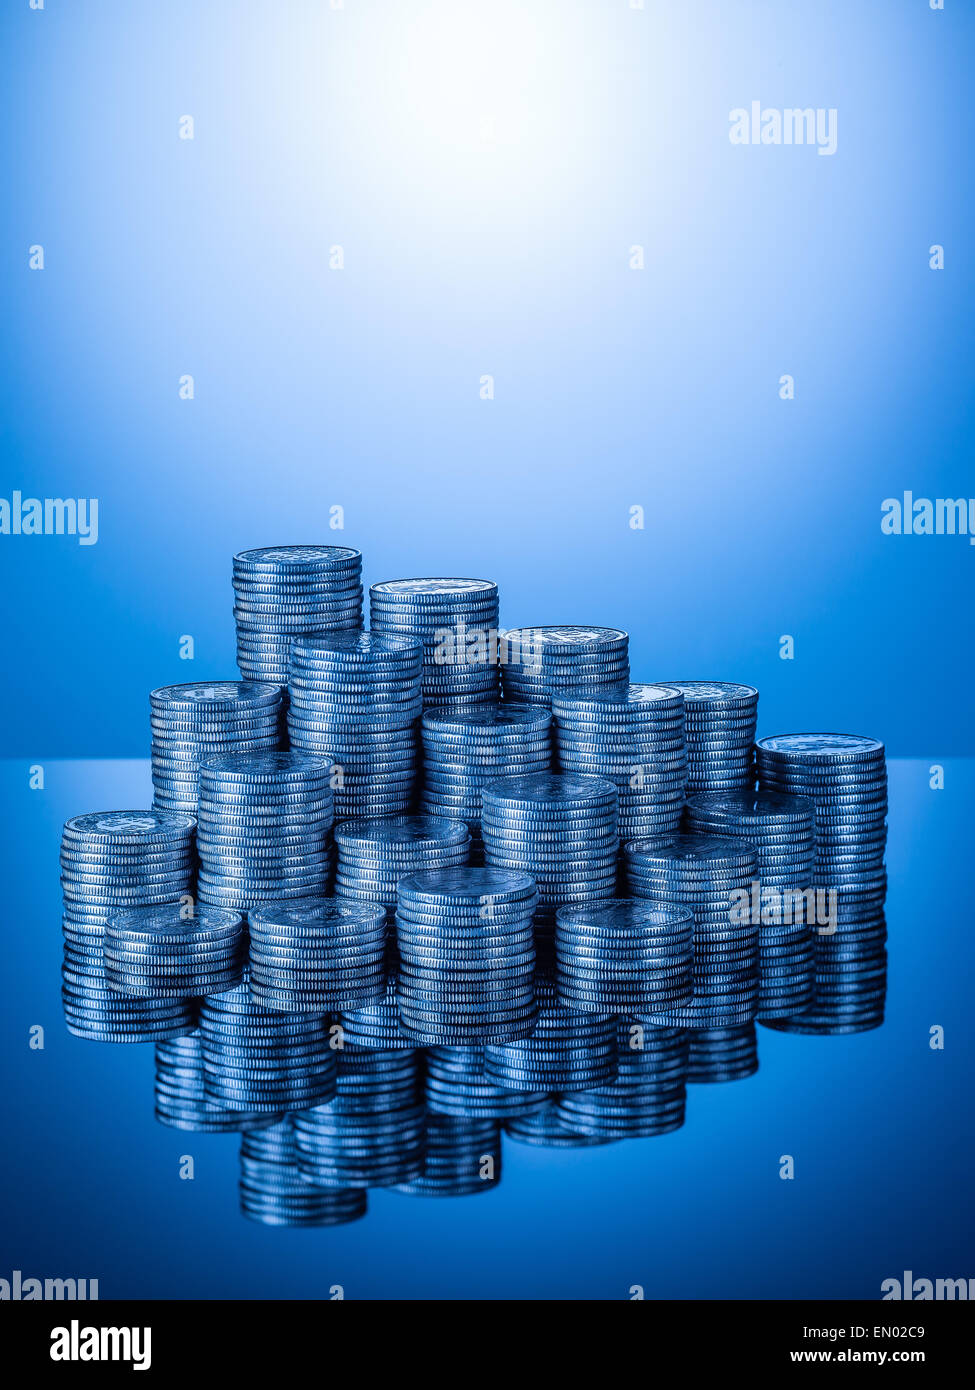 Stacks or piles of Swiss coins, two Francs pieces with reflection on shiny surface, blue gradient background, vertical - Stock Image